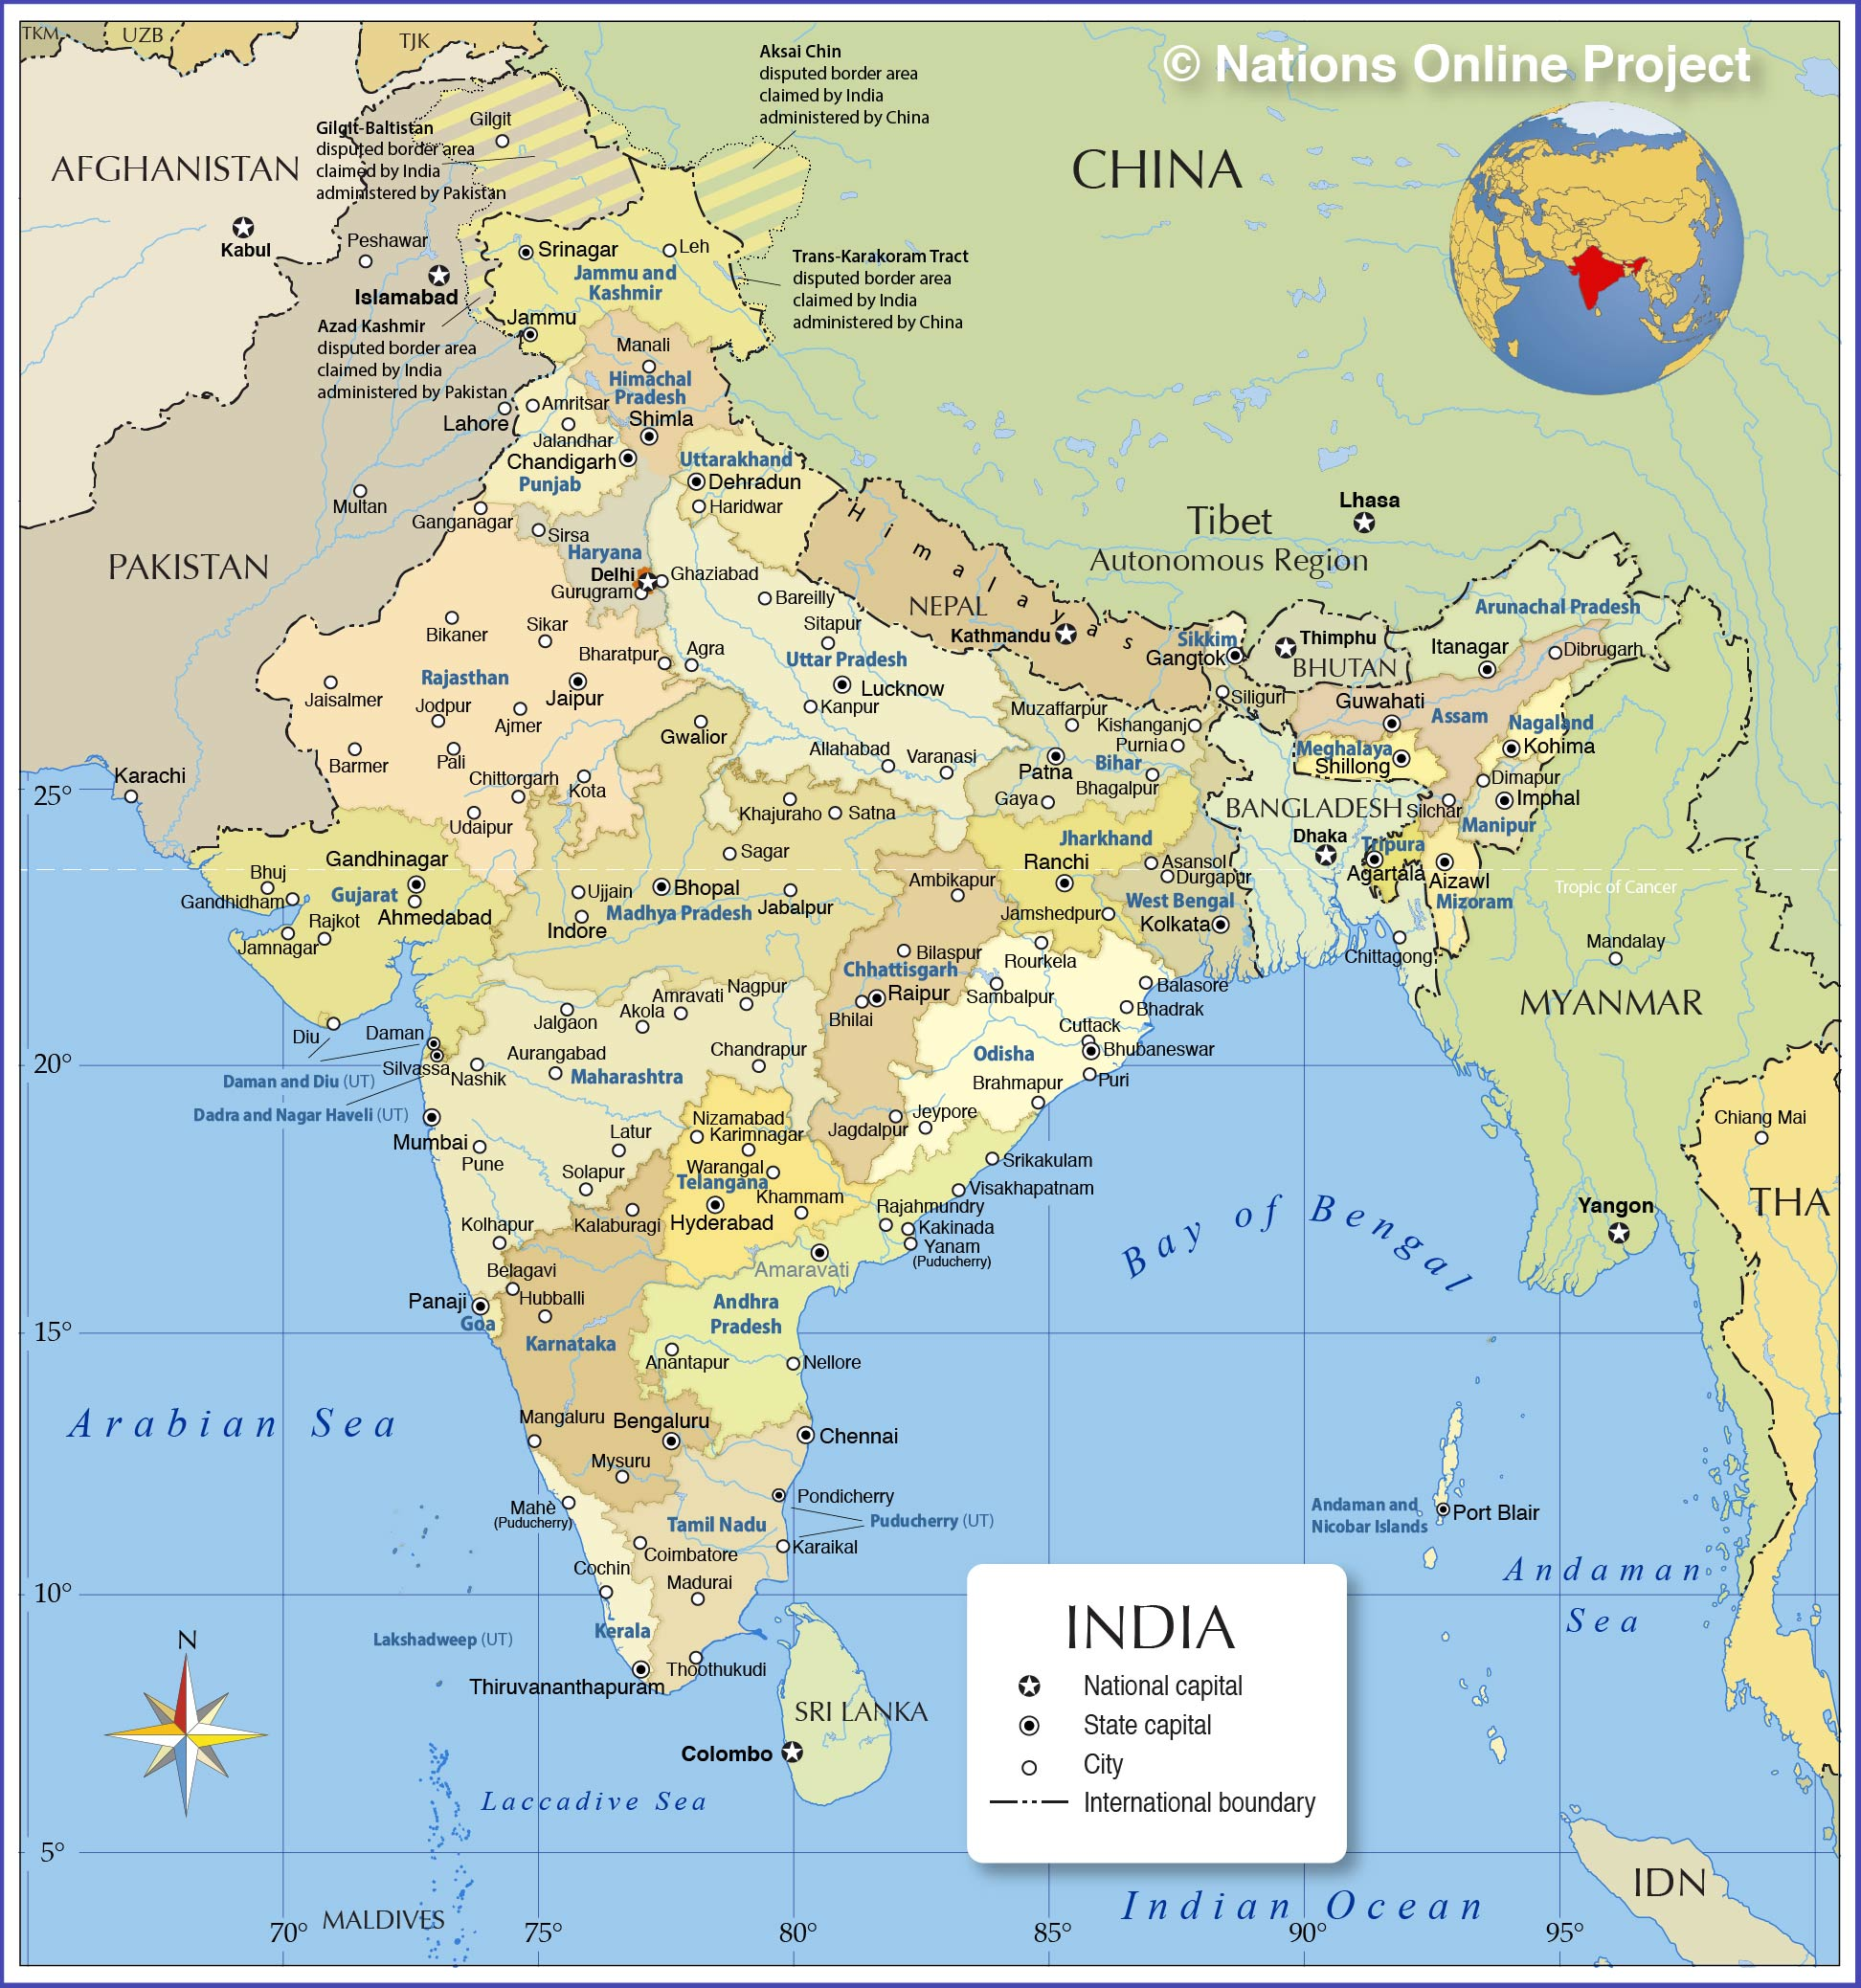 political gwalior in india map Political Map Of India S States Nations Online Project political gwalior in india map